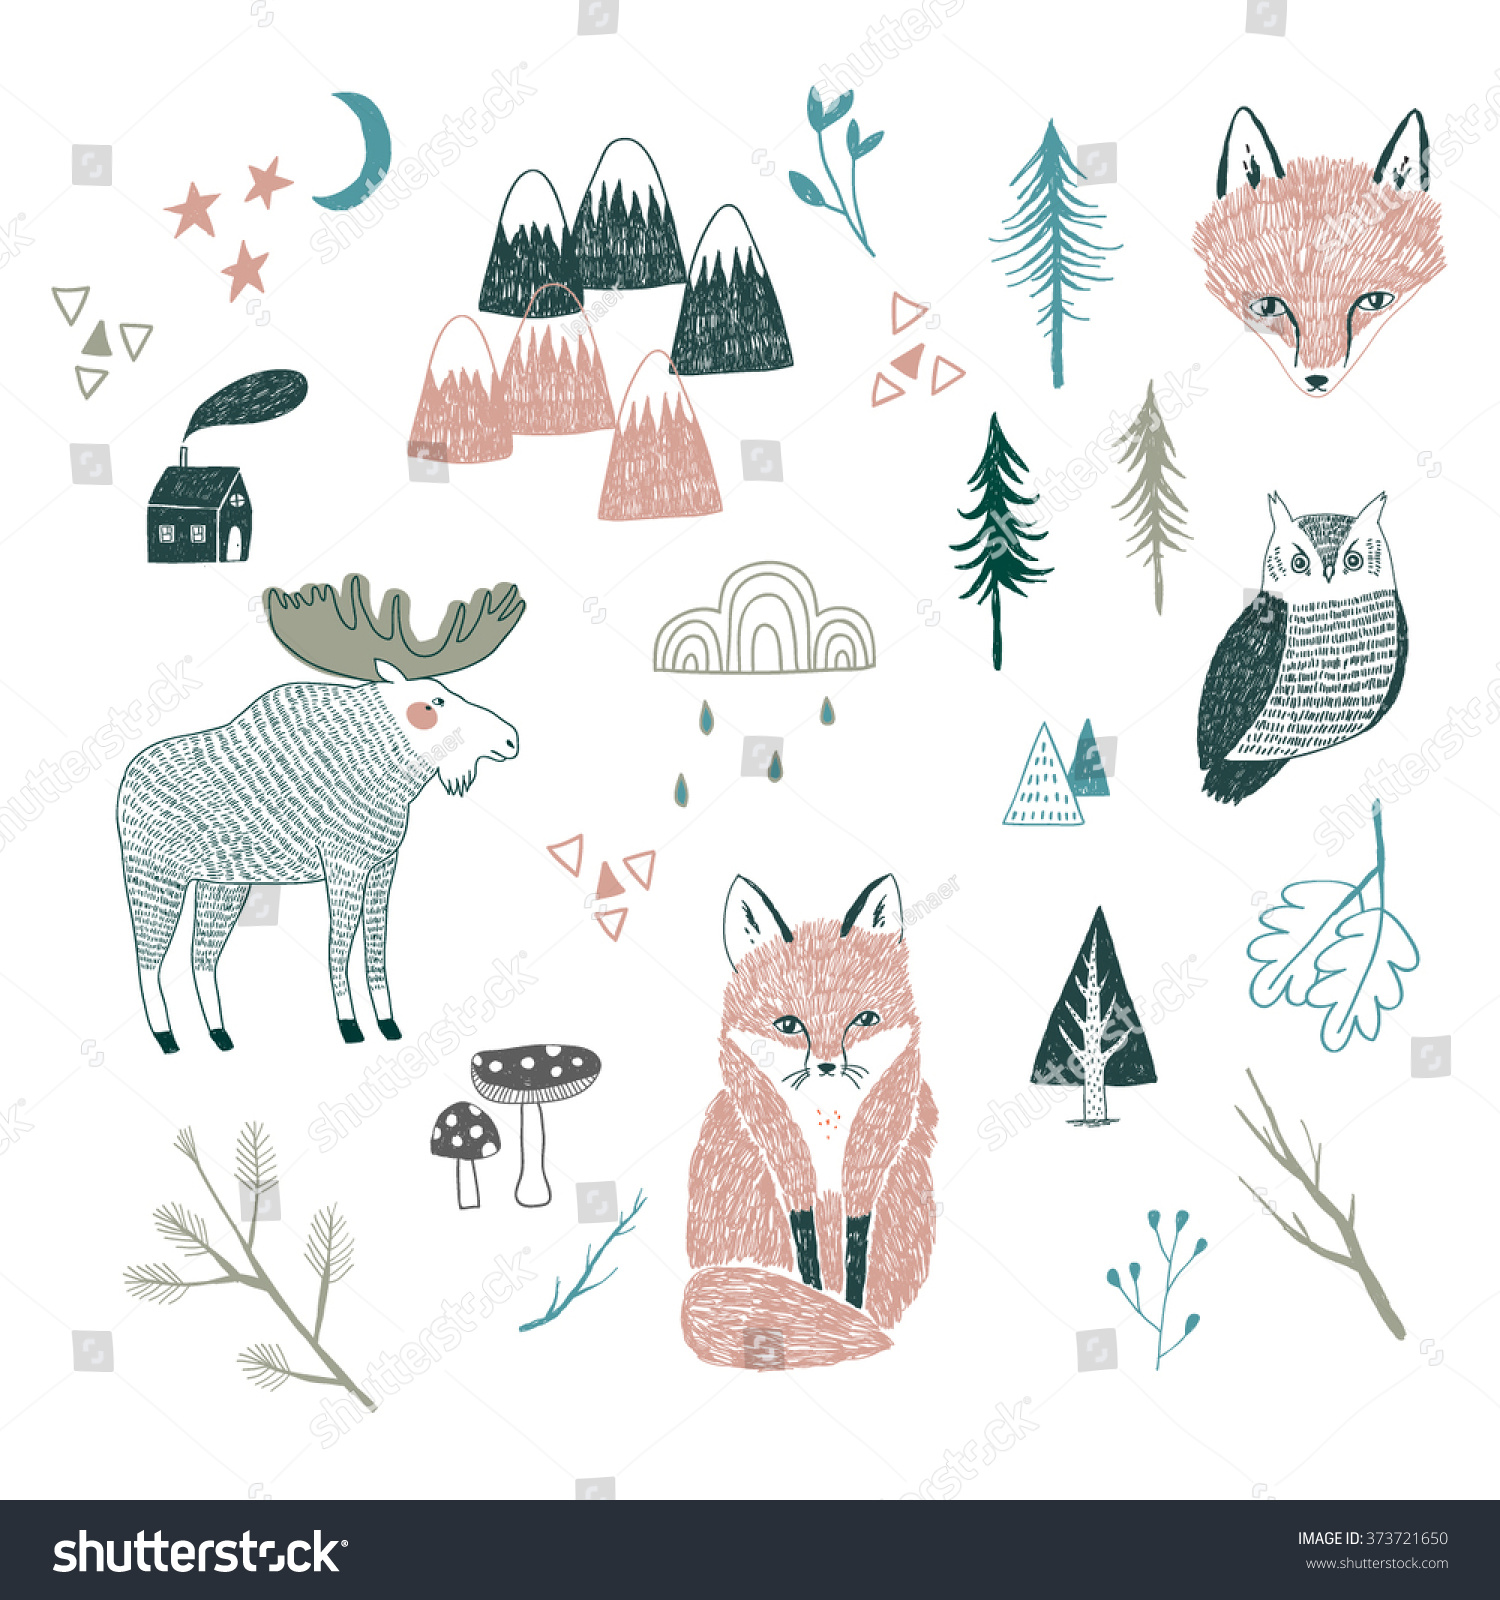 Line Drawings Of Woodland Animals : Vector drawing woodland animals trees mountains stock